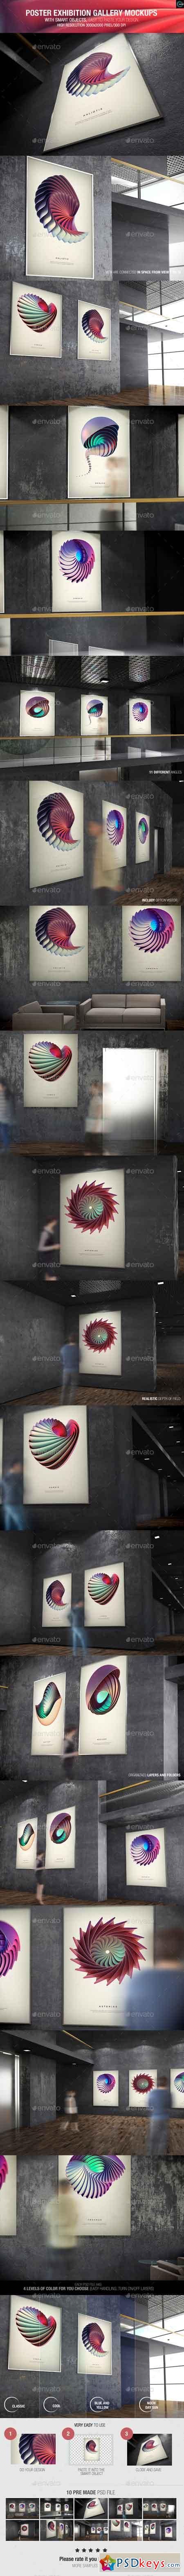 Poster Exhibition Gallery Mockups 9426620